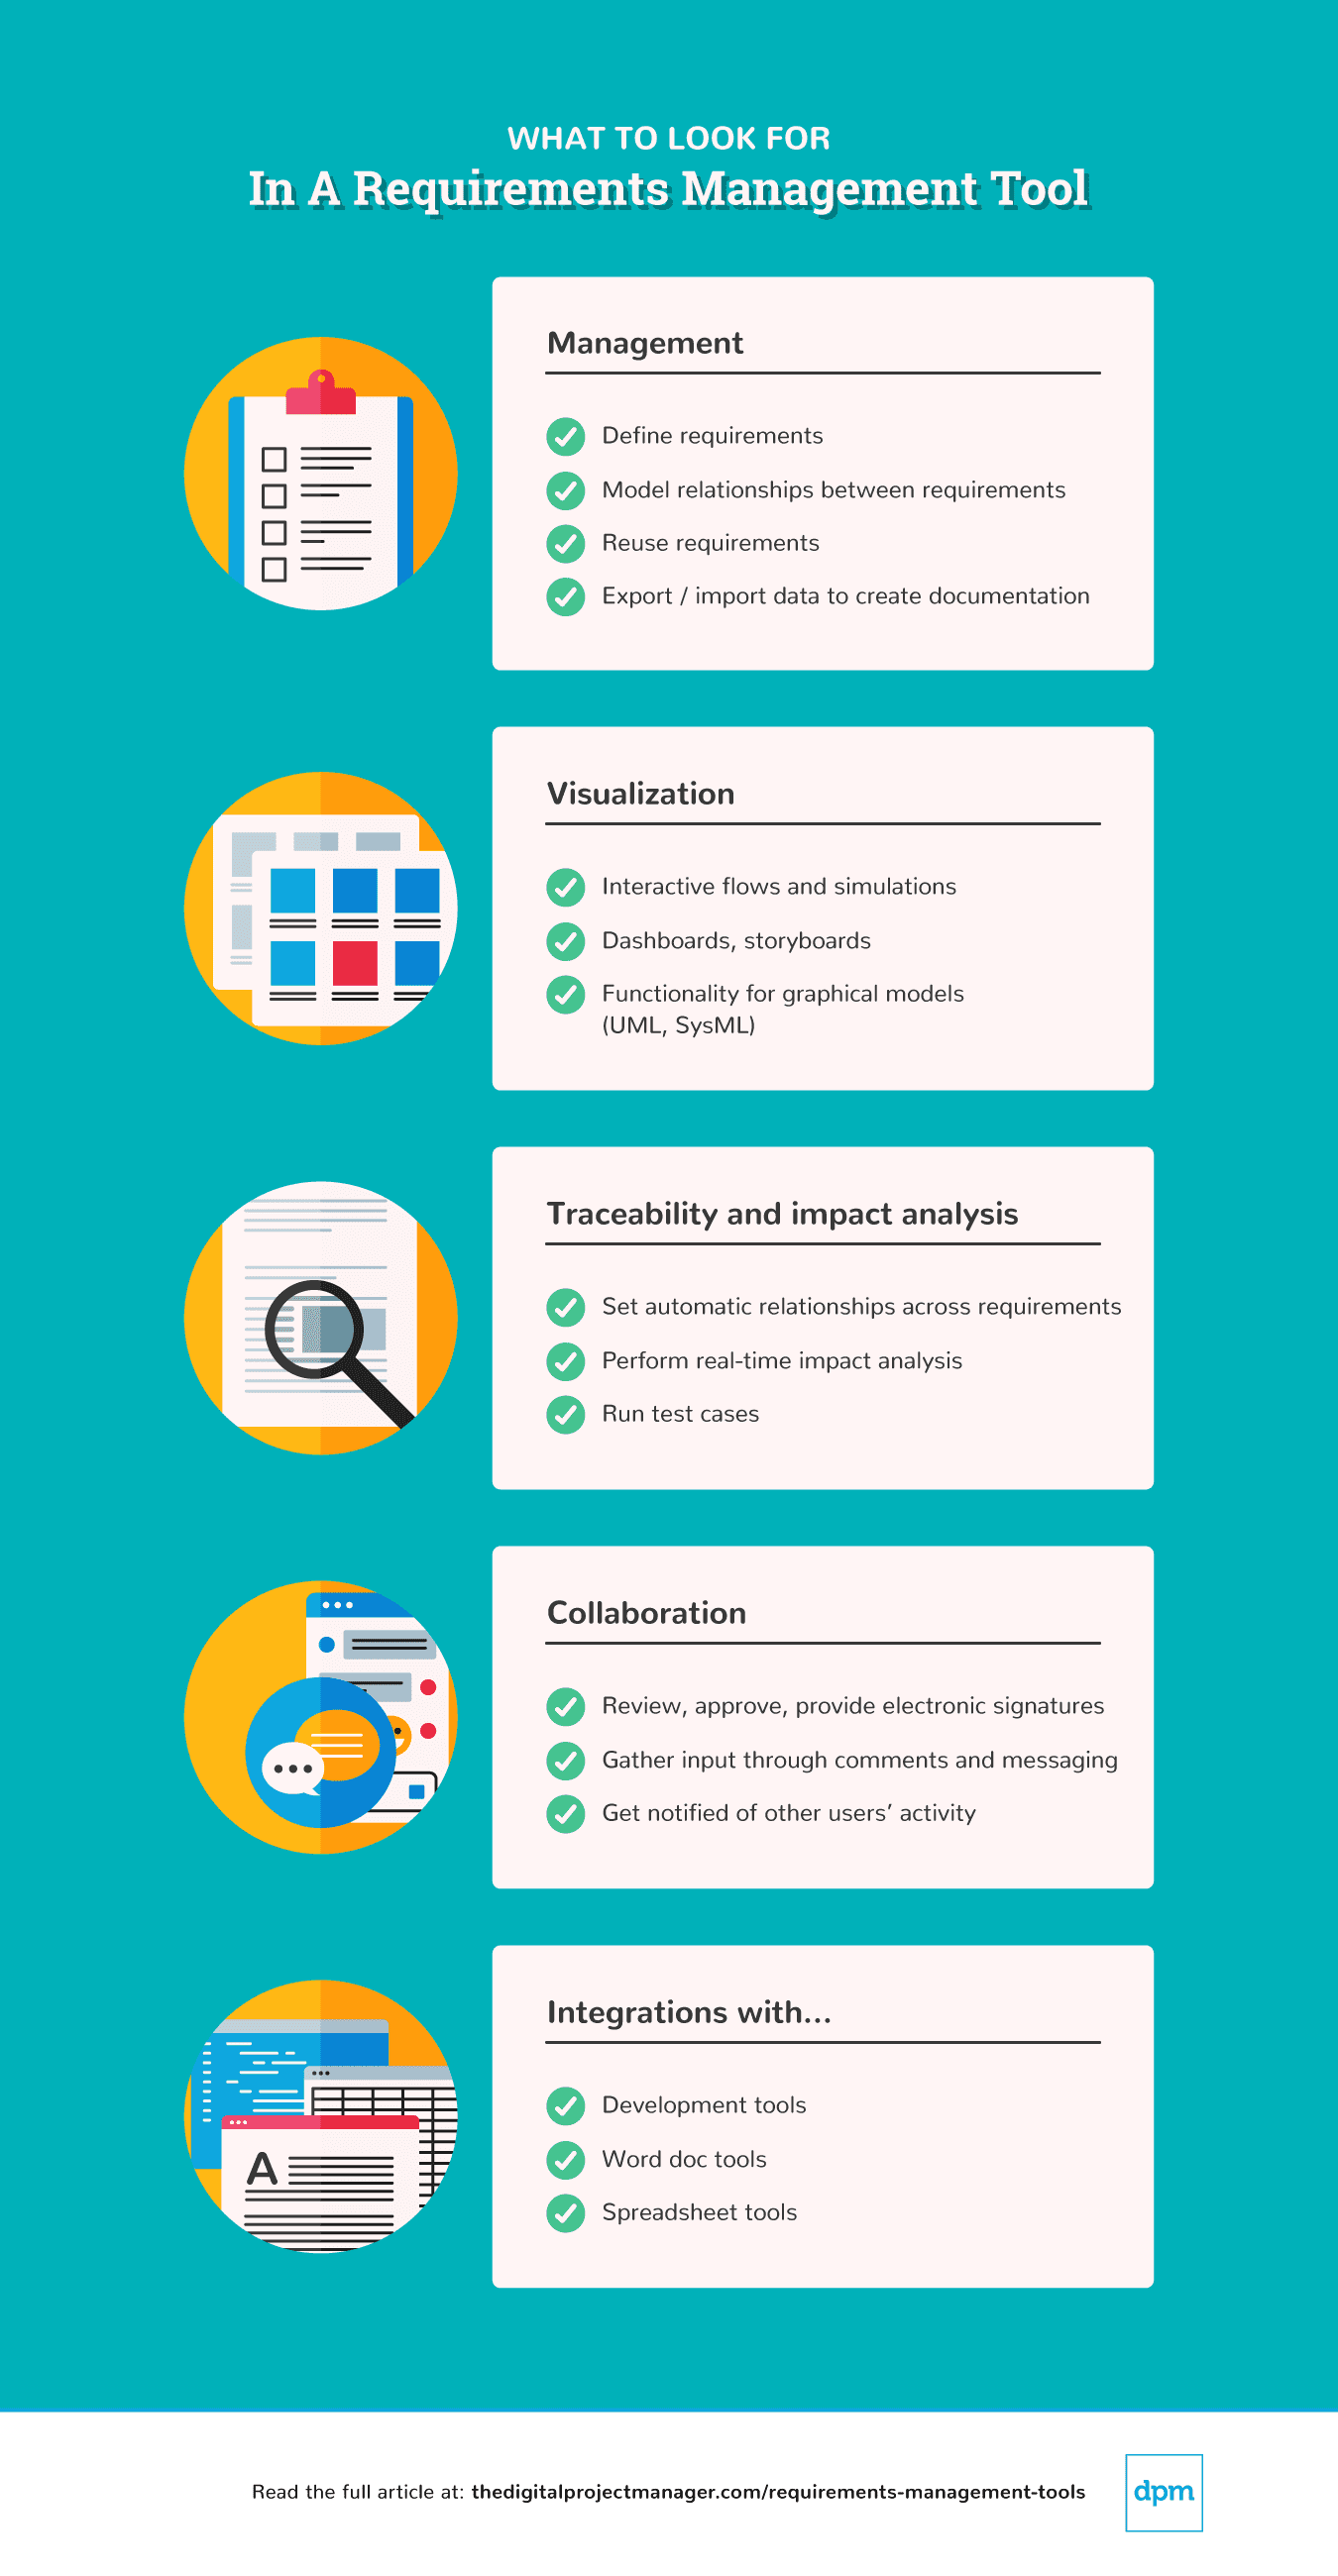 requirements-management-tools-infographic-1